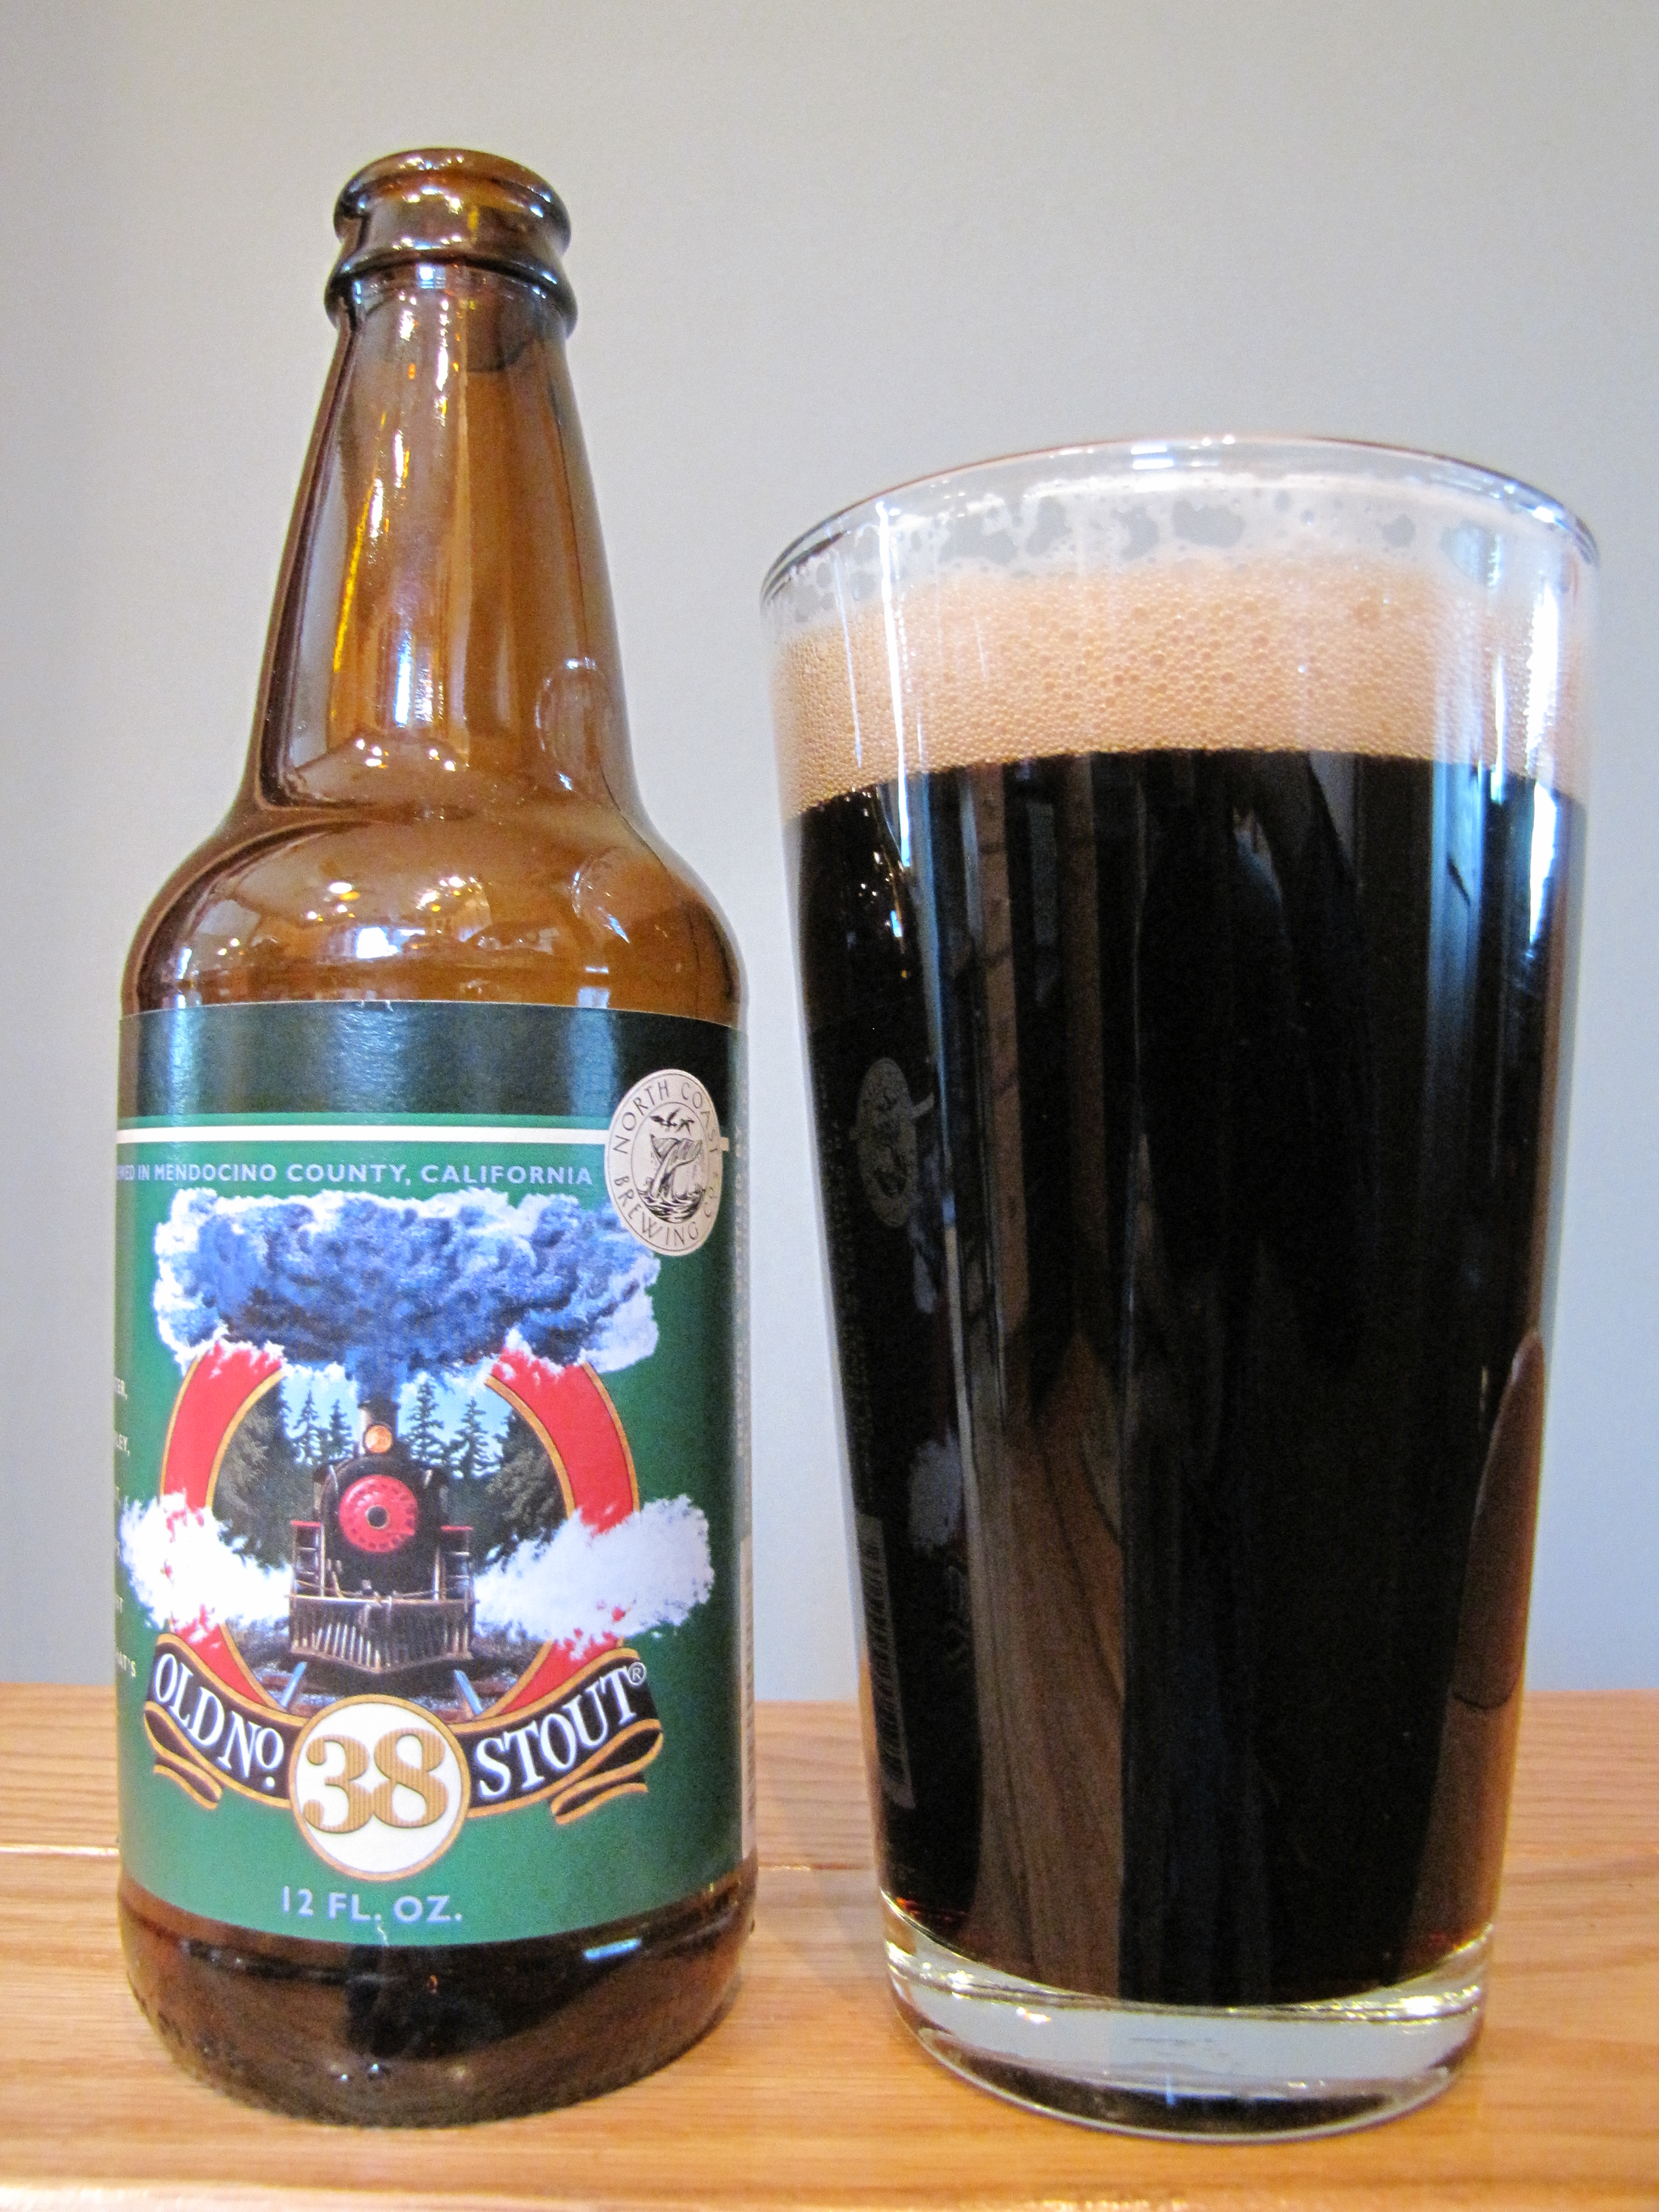 North Coast Old No. 38 Stout